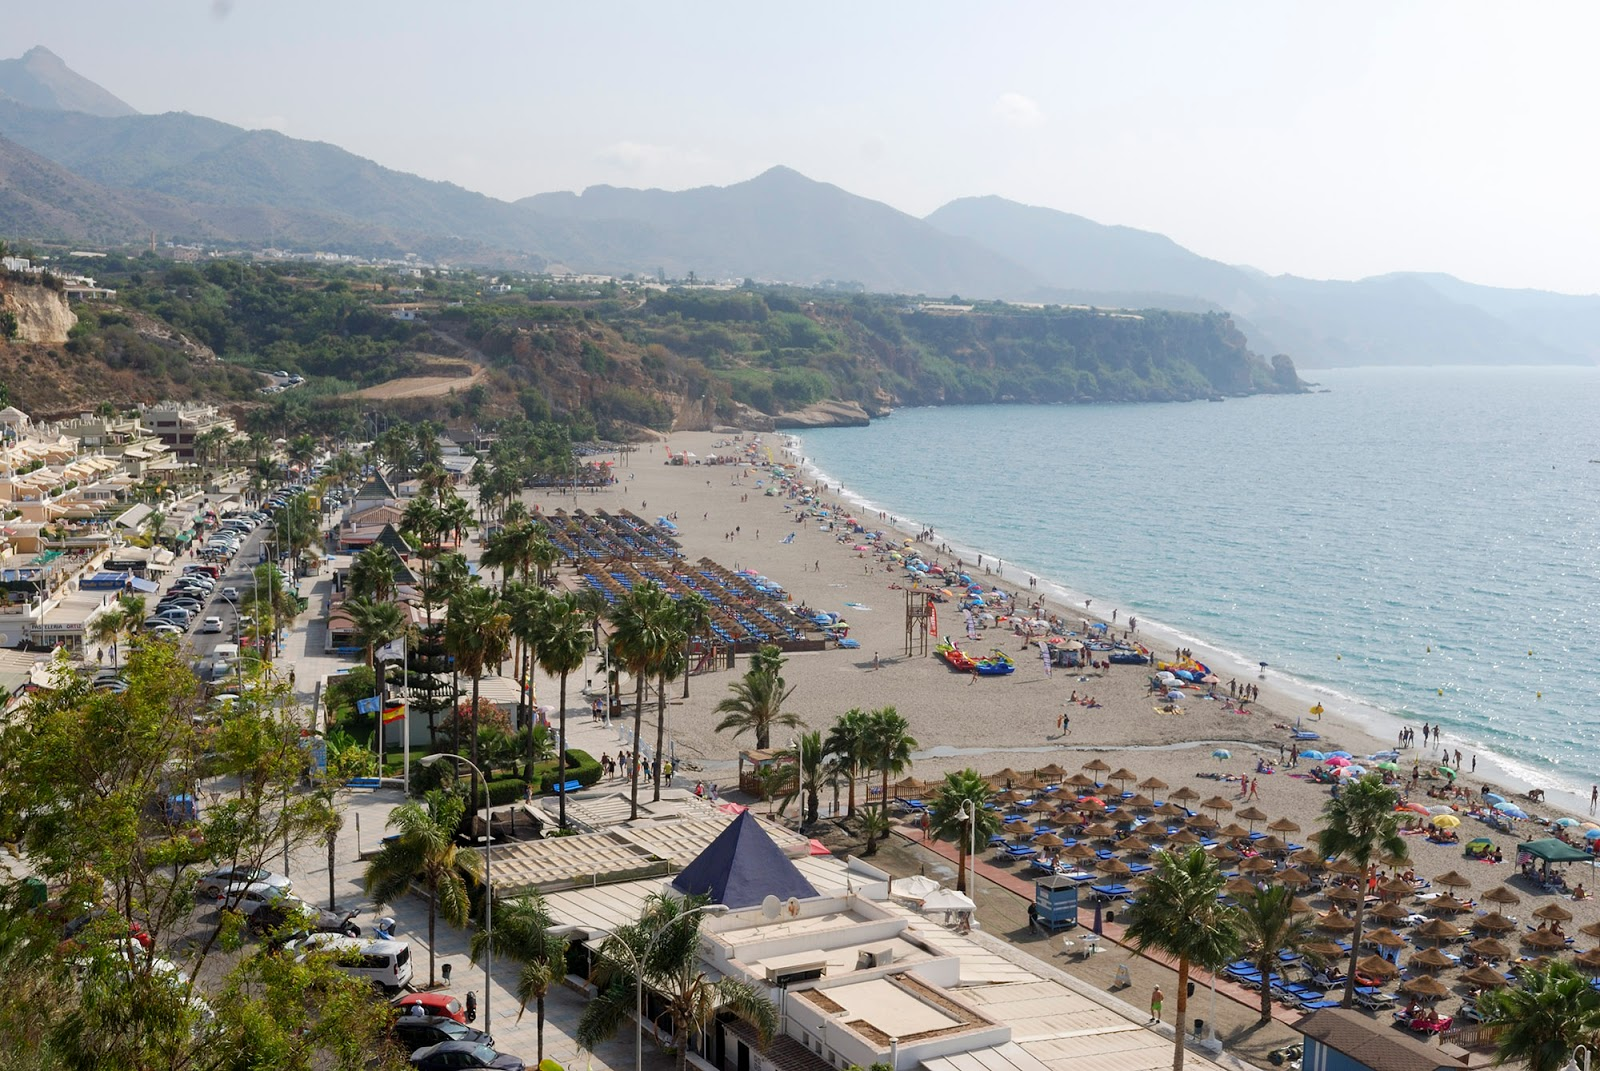 resort hotel beach spain andalusia coast southern destination playa burriana nerja malaga